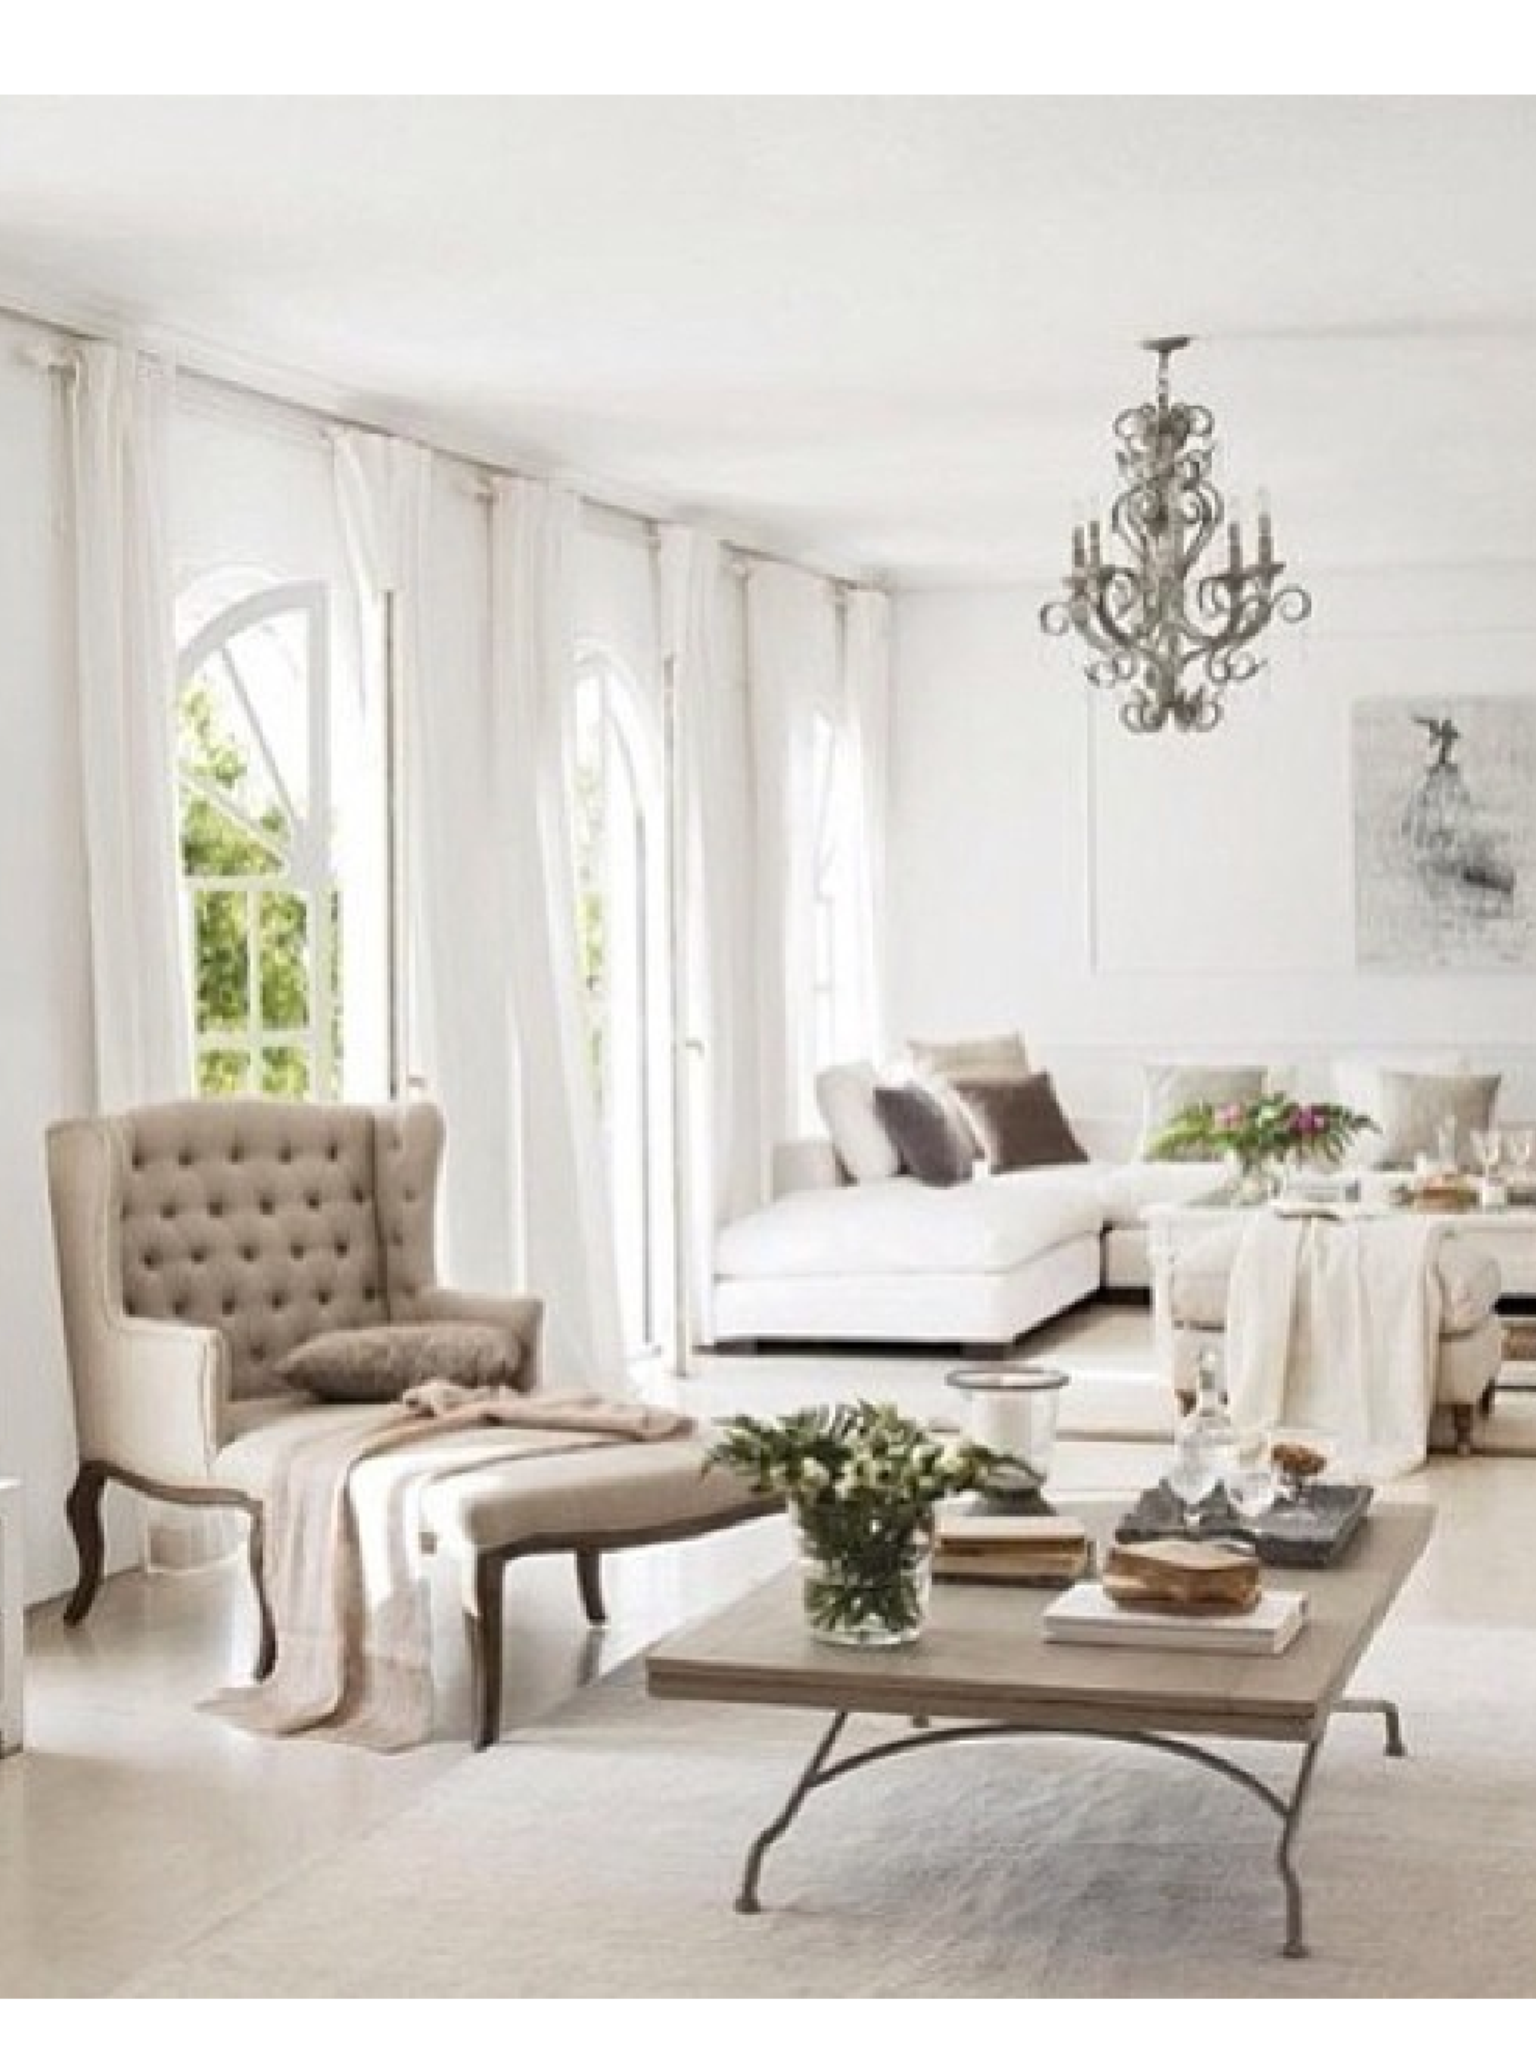 bright and airy | Woman Cave | Pinterest | Bright, Living rooms and ...